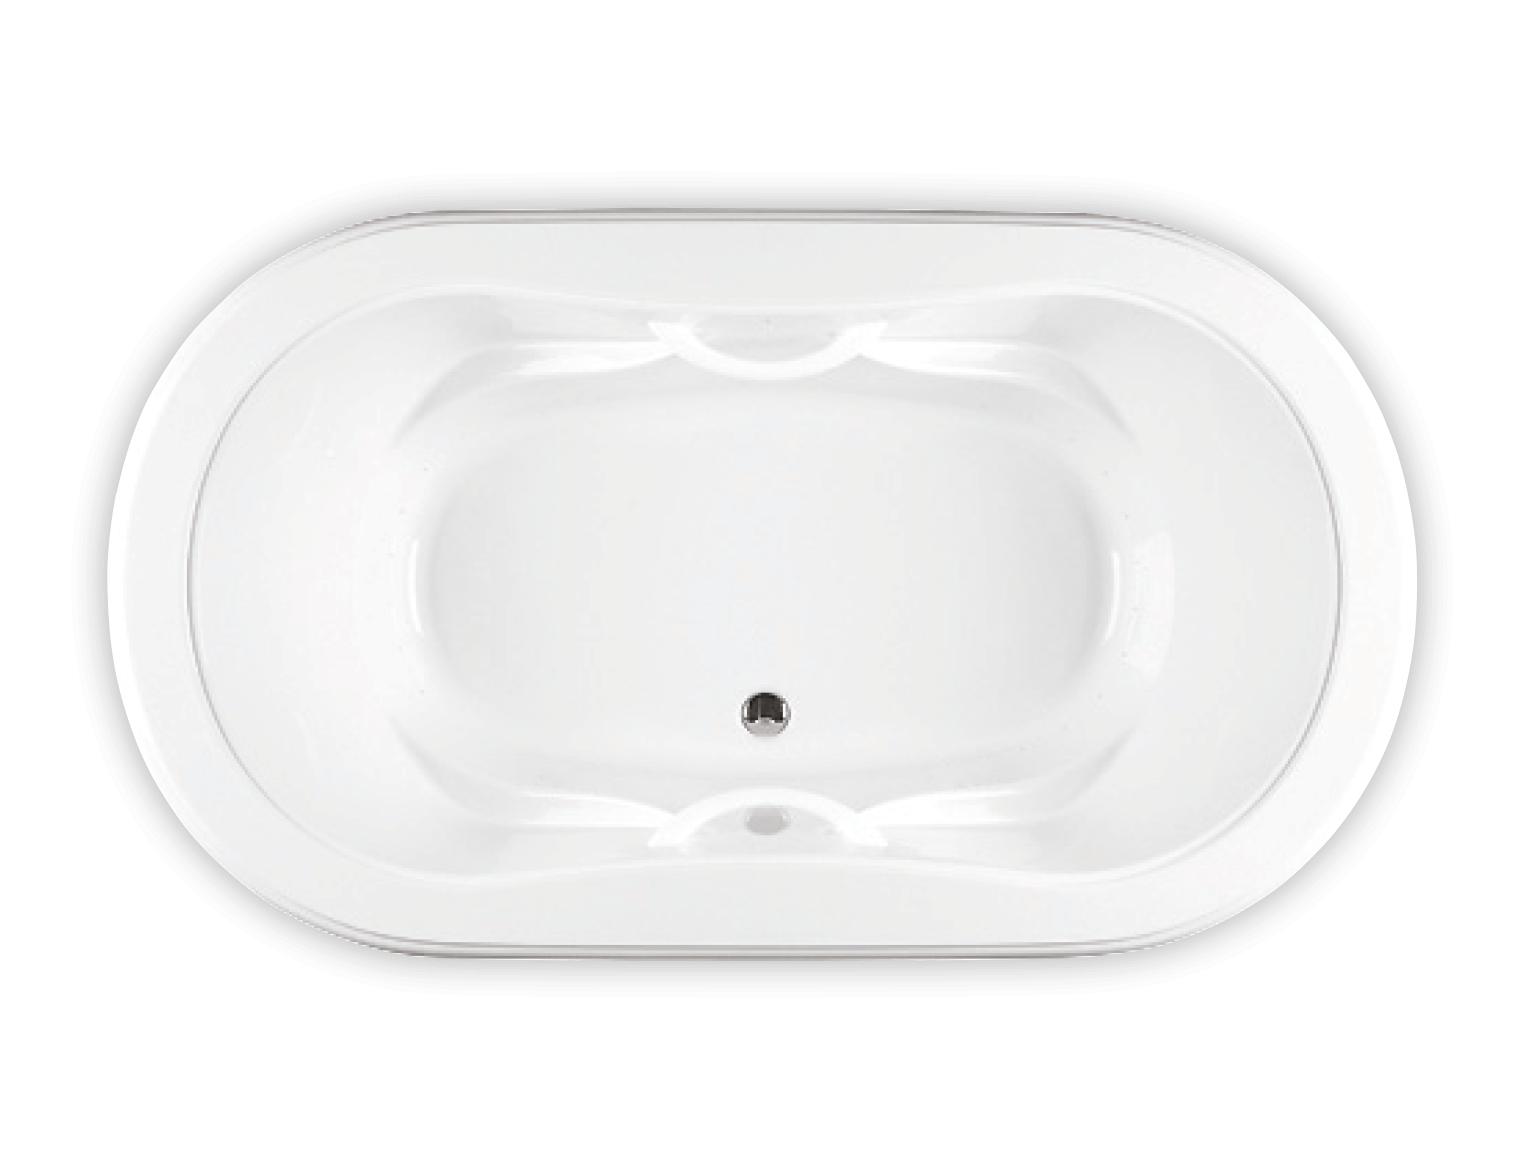 Bainultra Elegancia 7242 two person large air jet bathtub for your Victorian bathroom